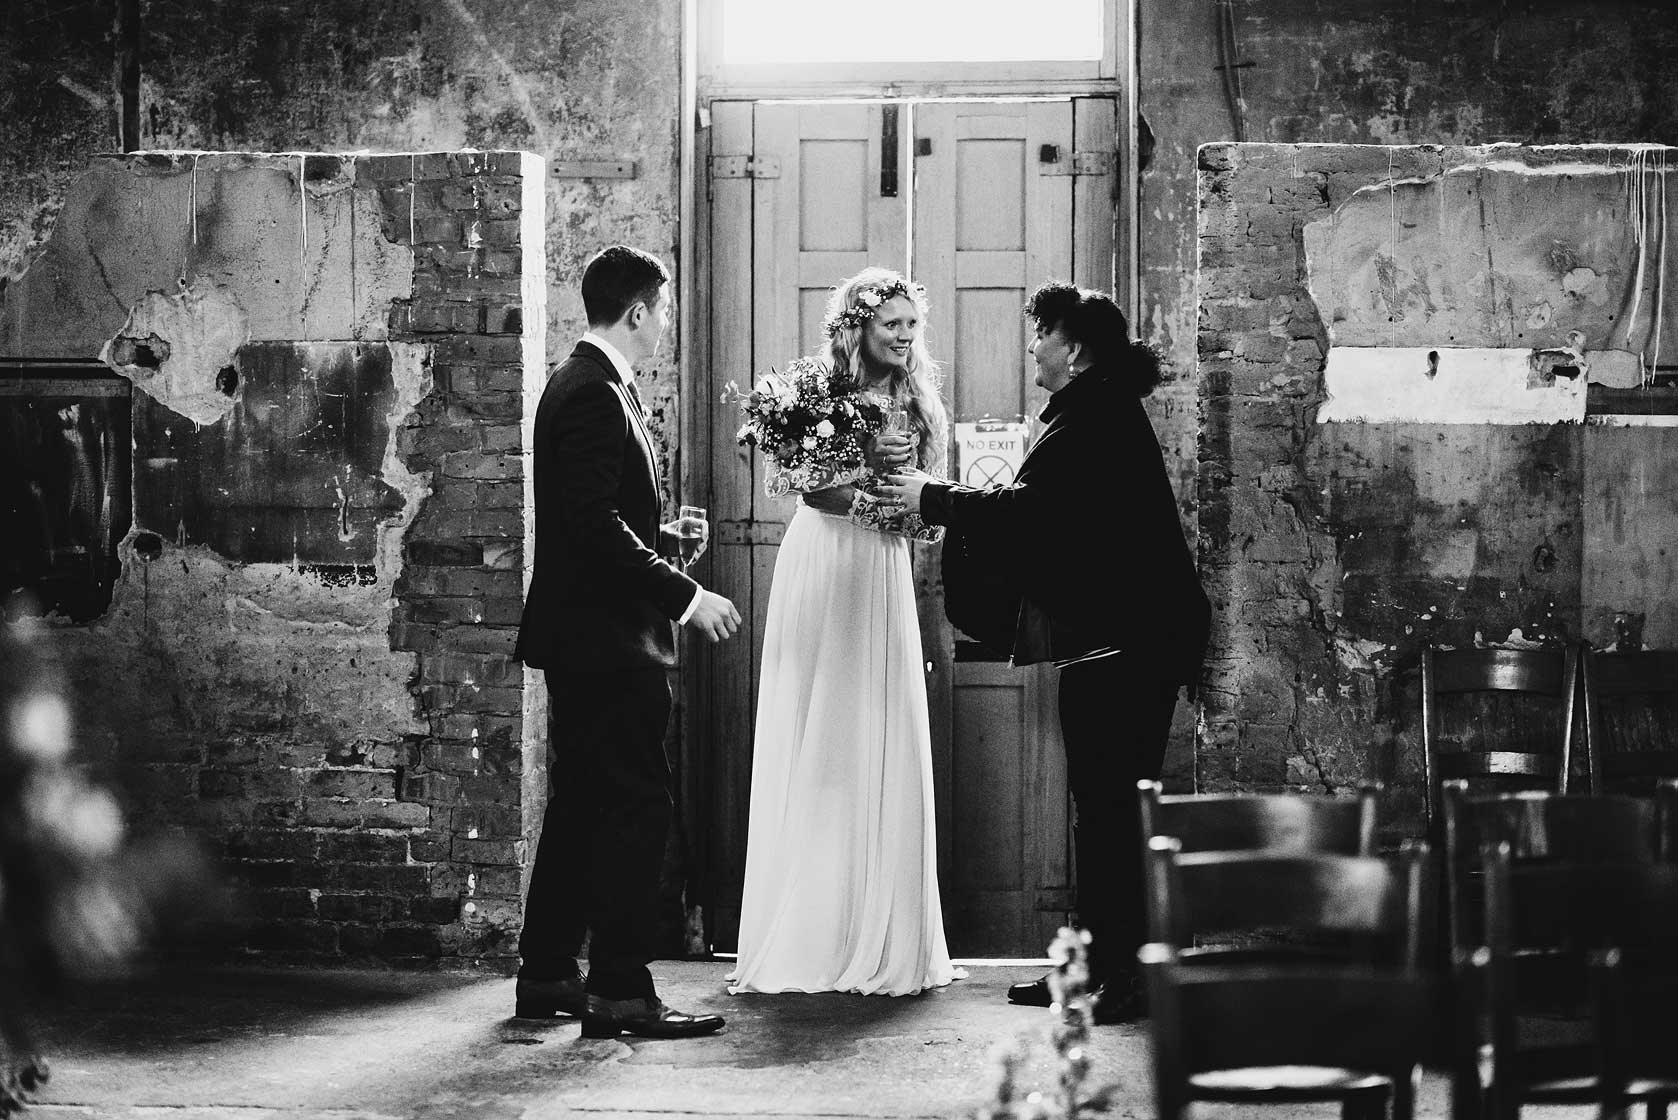 Reportage Wedding Photography at Asylum Chapel